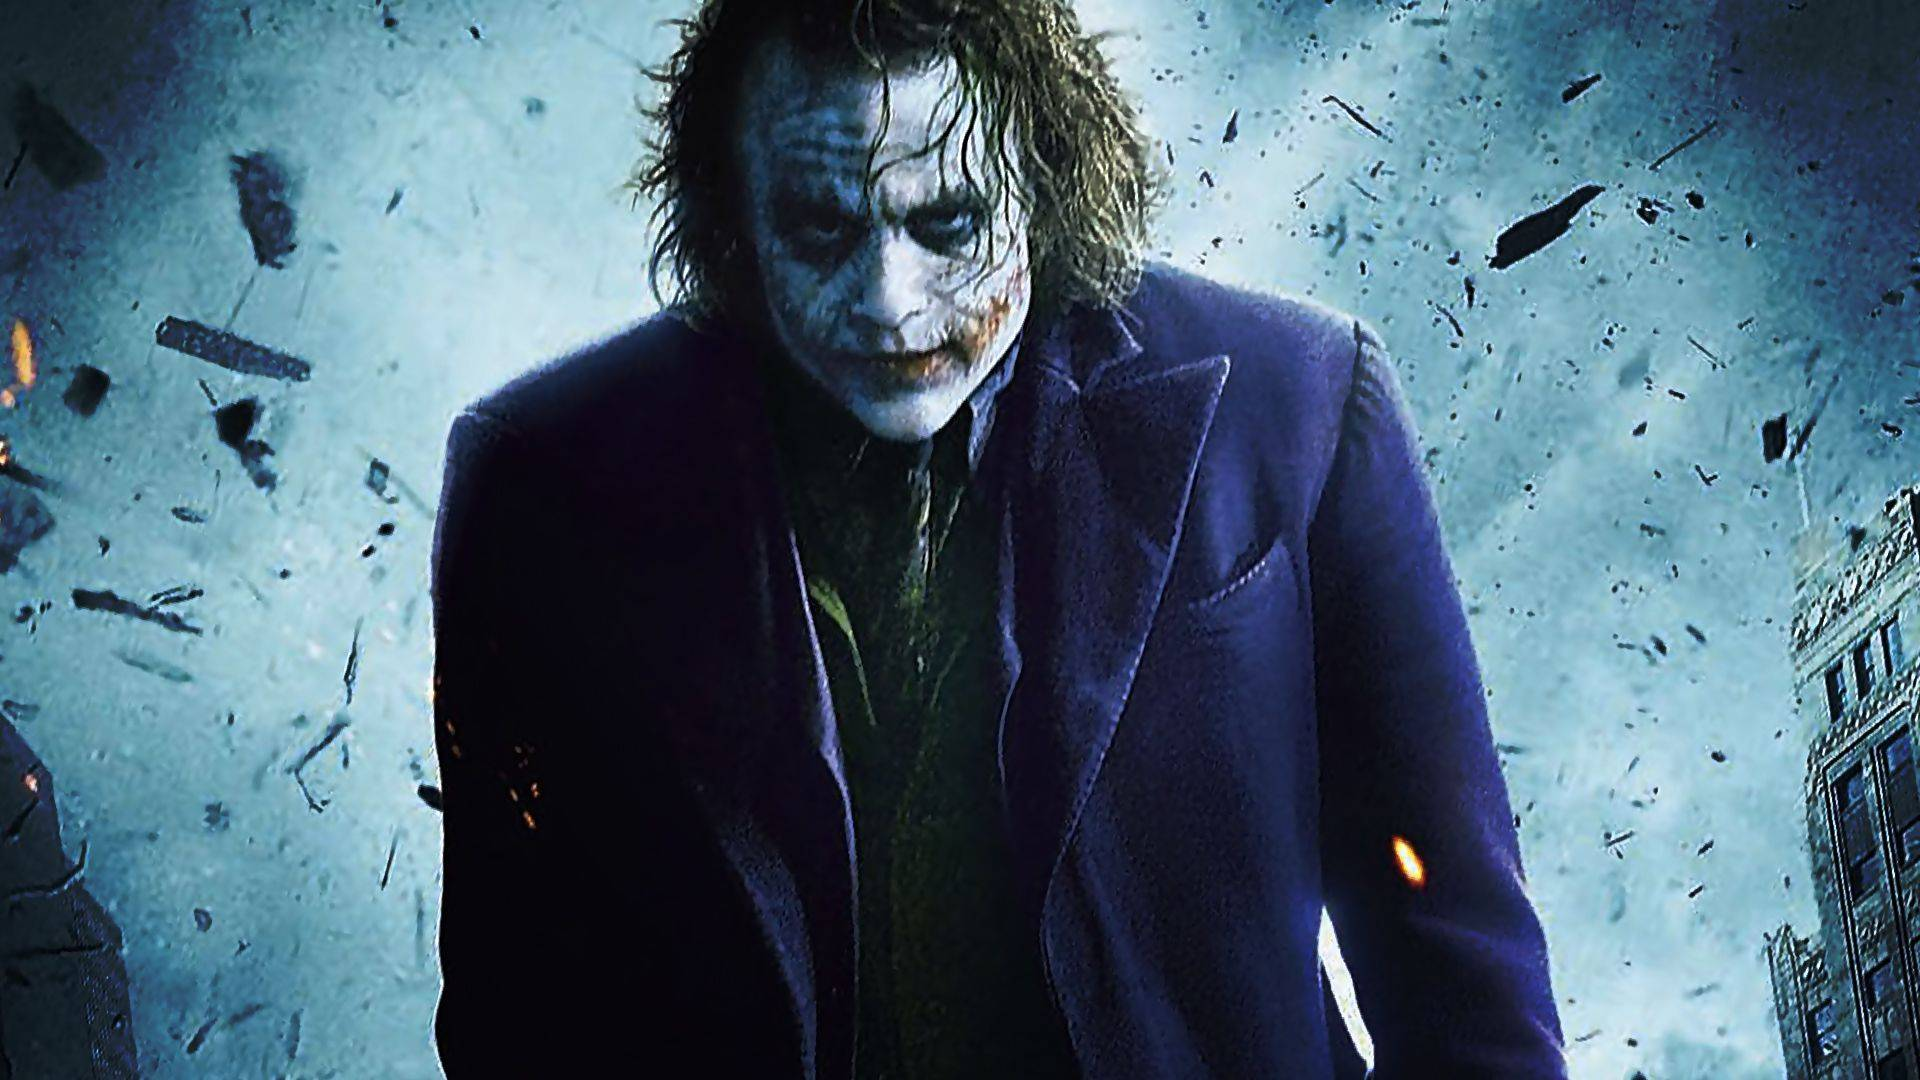 The Joker The Dark Knight   Heath Ledger   Batman Wallpaper 1920x1080